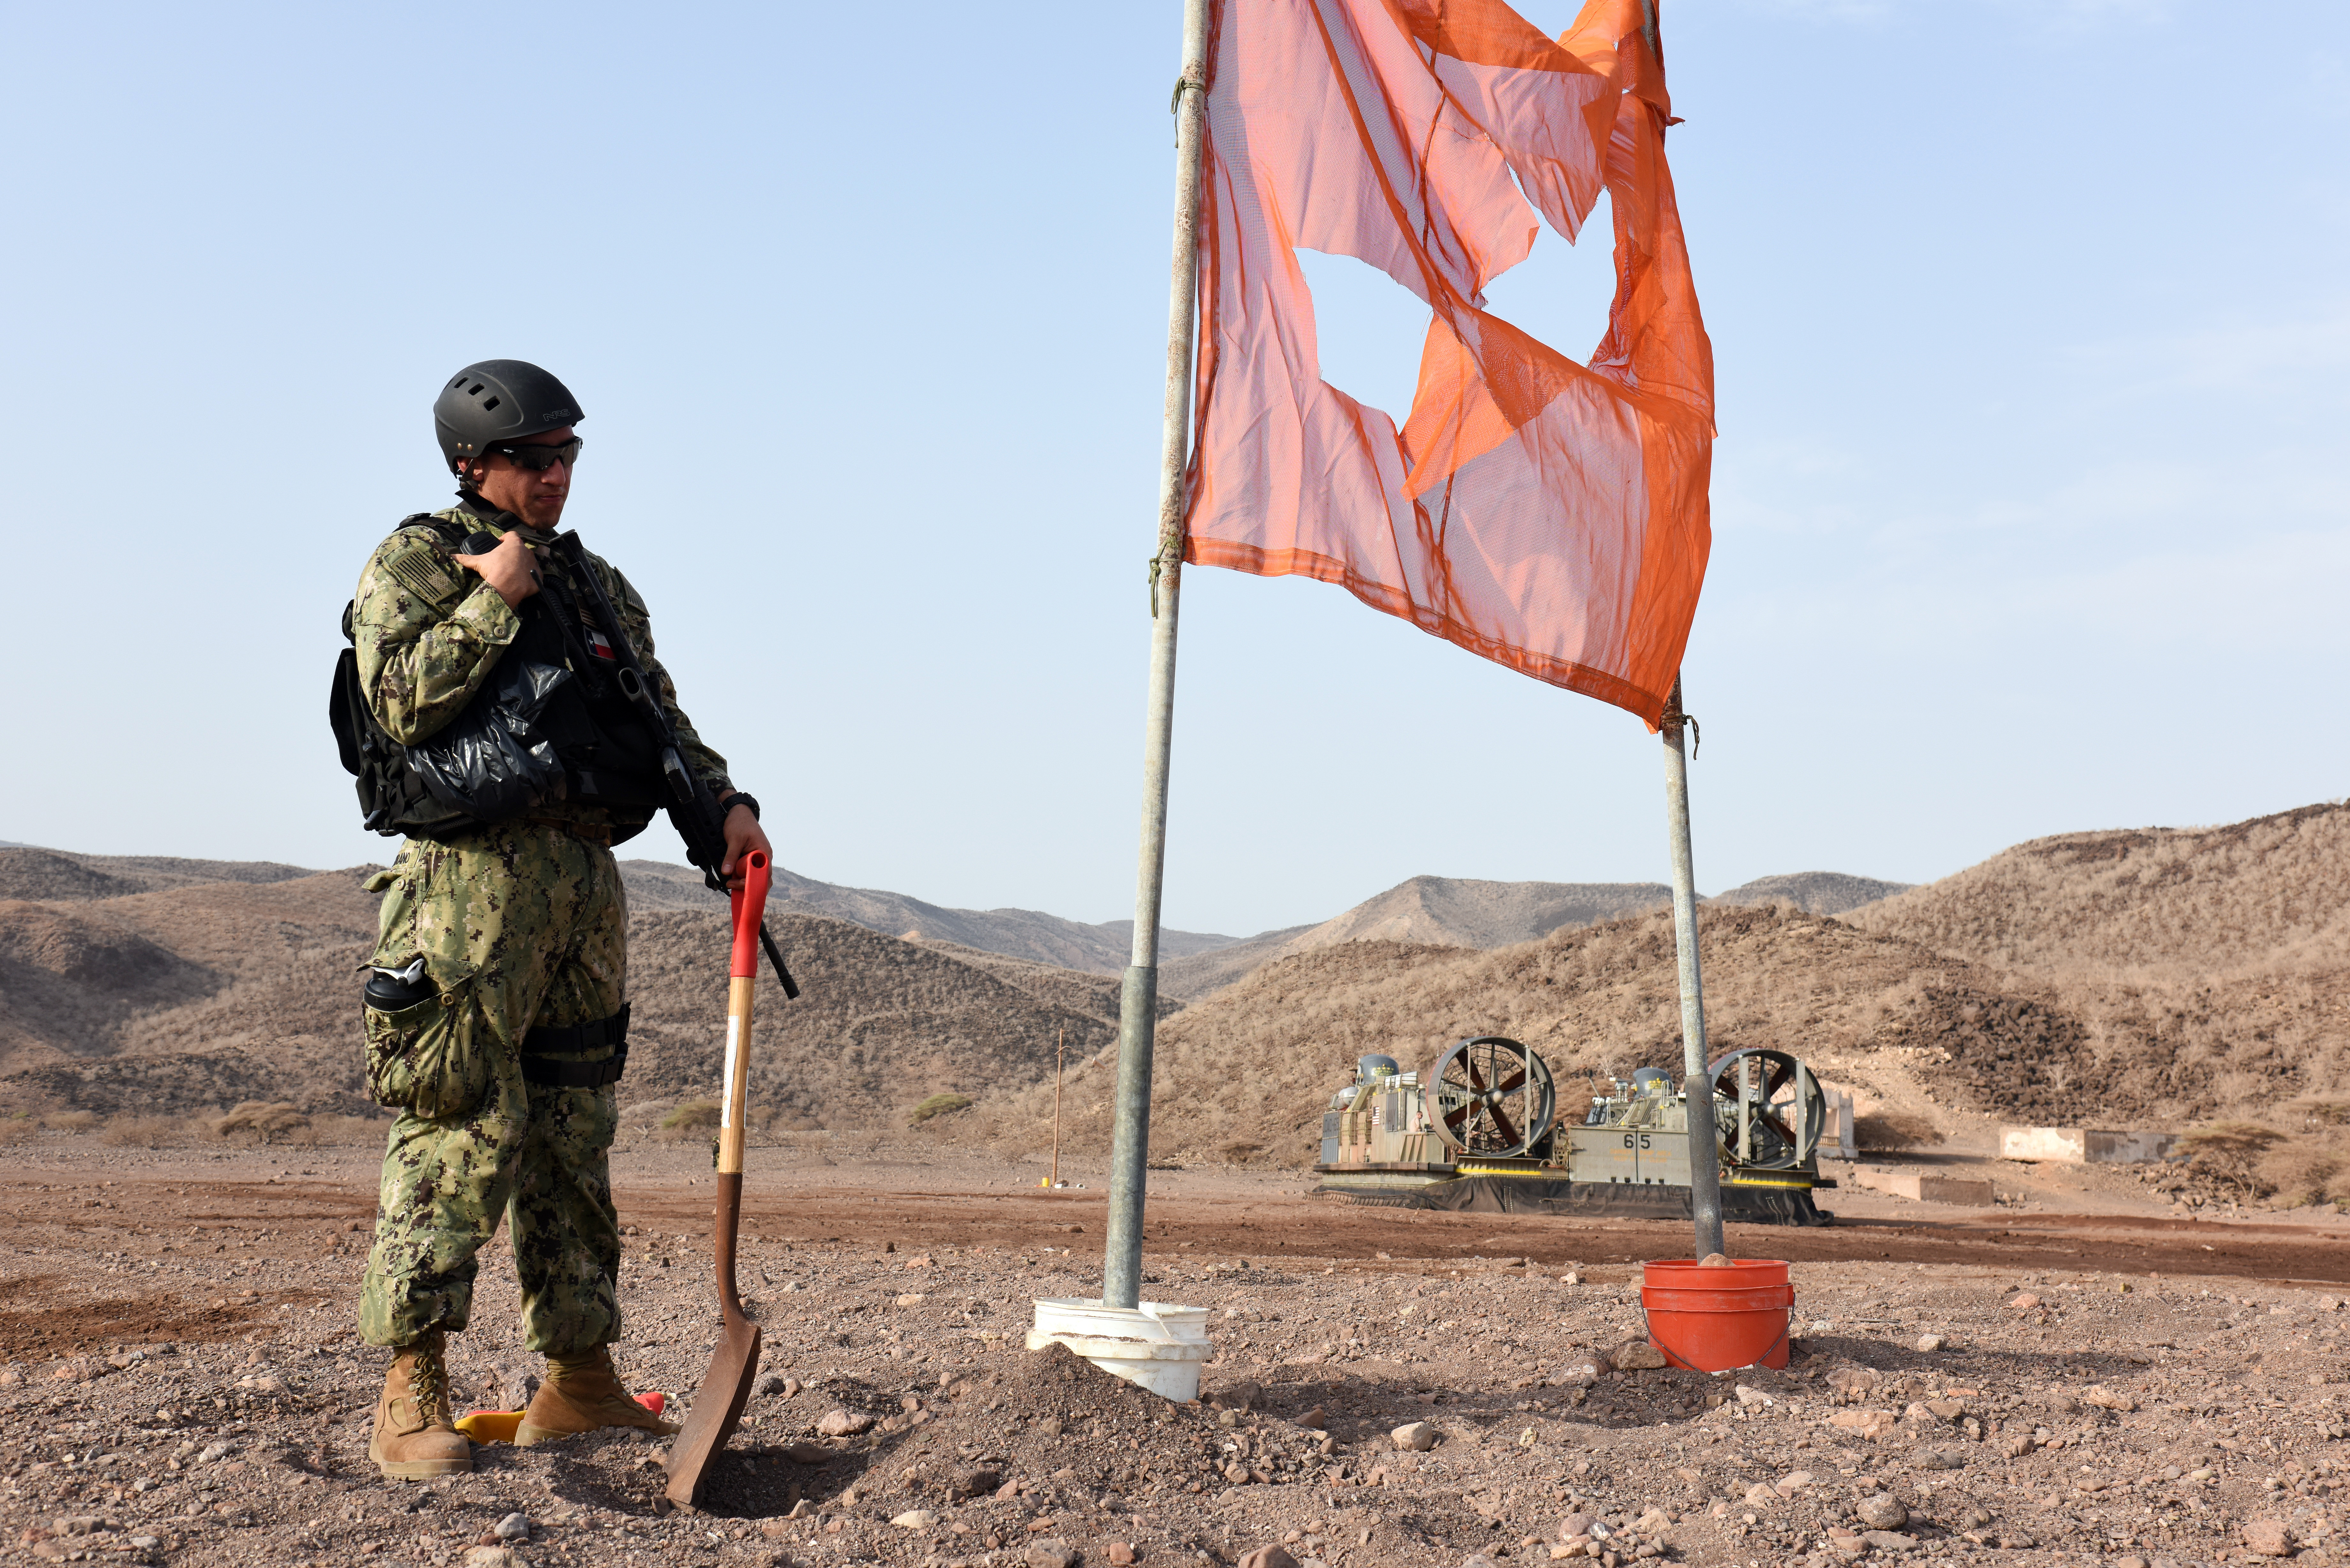 A U.S. Navy Maritime Expeditionary Security Force member completes work on a signal flag as part of sustainment training preparations for the 15th Marine Expeditionary Unit at Arta Beach, Djibouti, July 20, 2015. Signal flags are used by security forces to alert oncoming U.S. Navy Landing Craft Air Cushion (LCAC), and other landing vessels, that the beachhead is safe and secure for landing and the offloading of personnel and equipment. (U.S. Air Force photo by Staff Sgt. Nathan Maysonet)